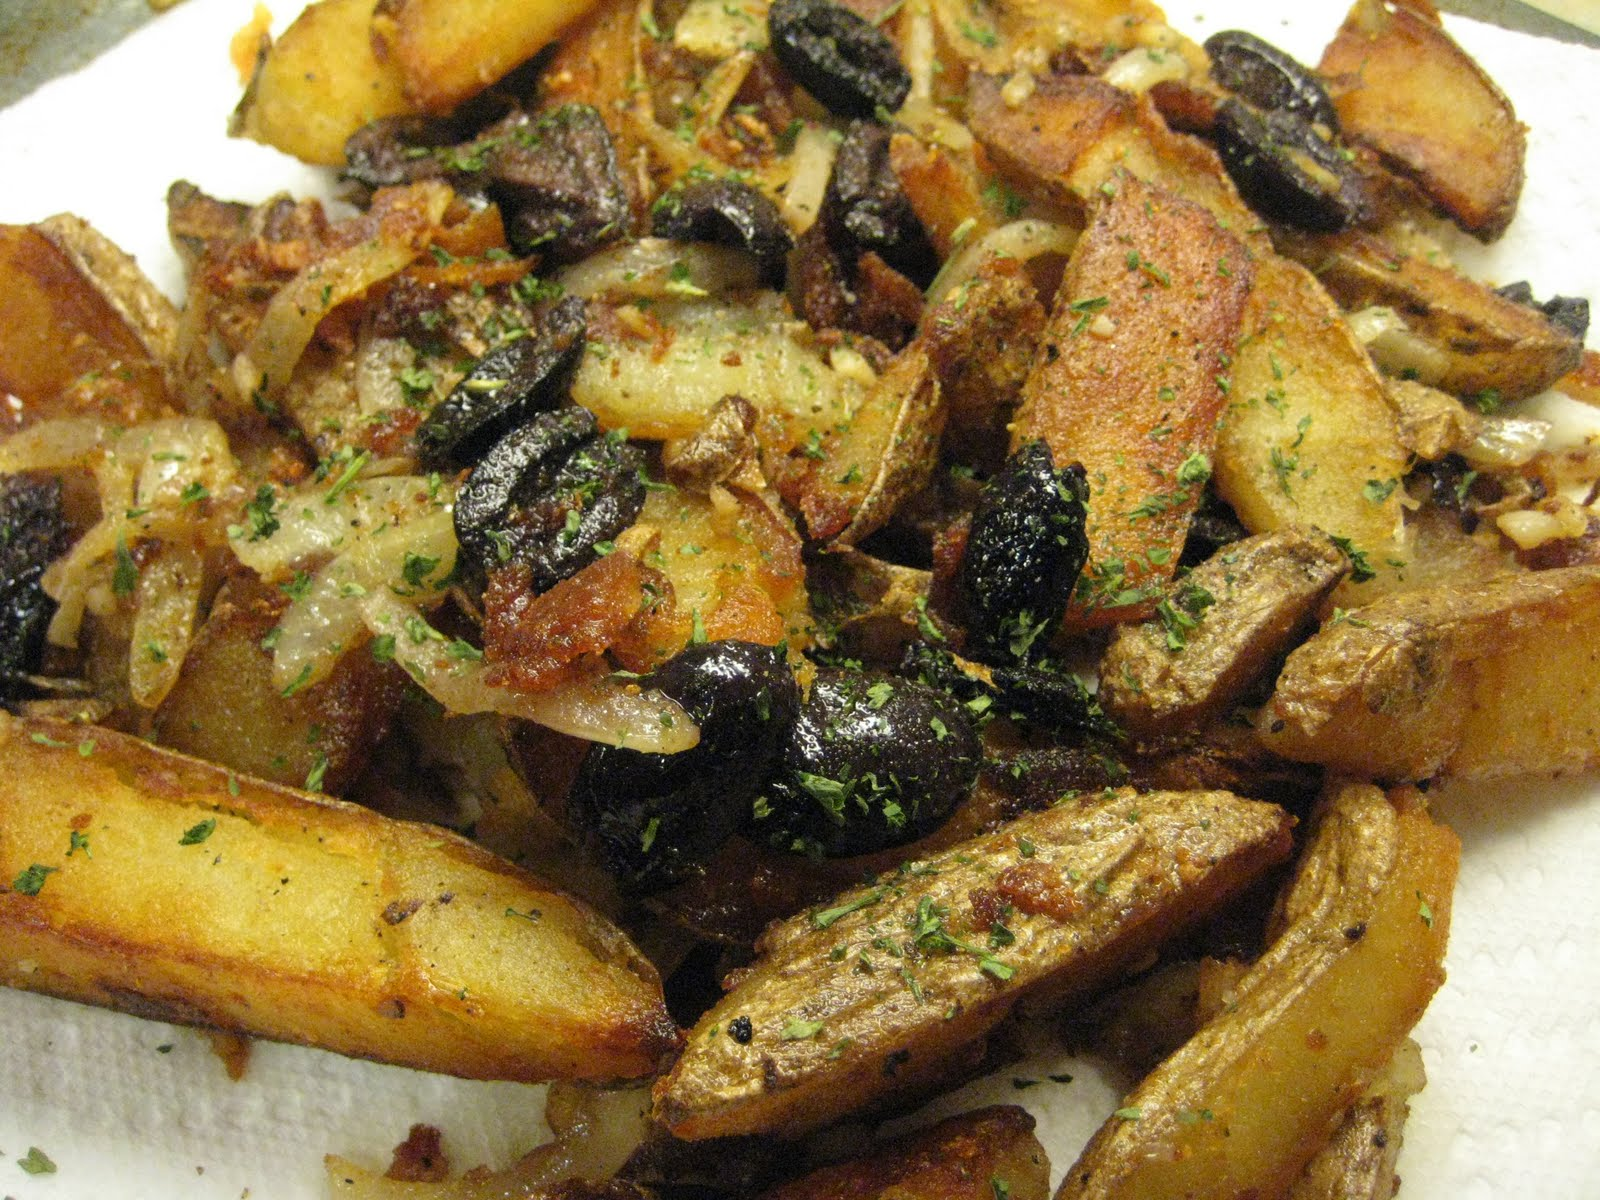 Italian Pan-Fried Potatoes